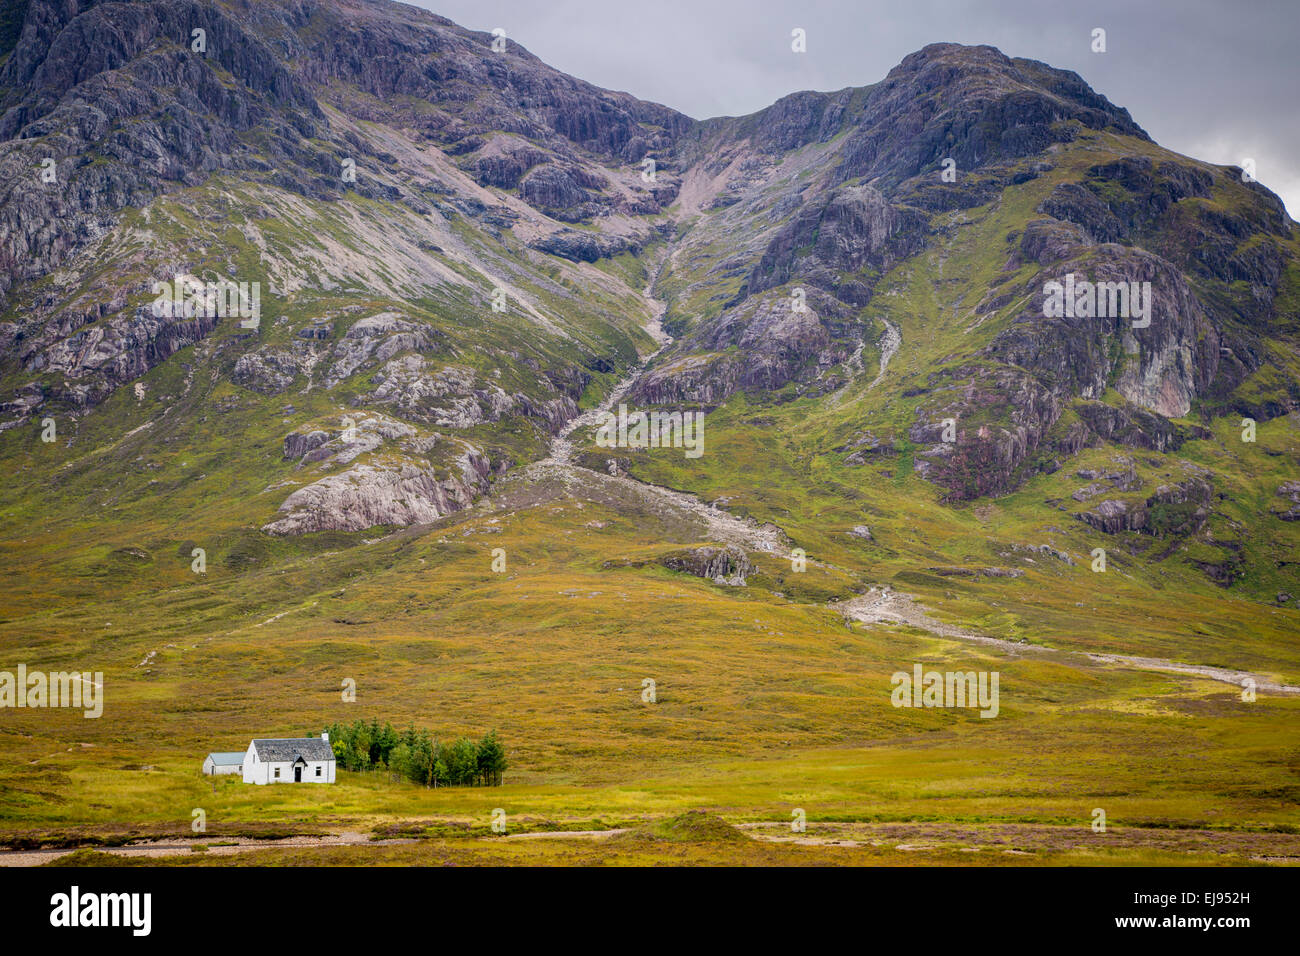 Solitary small home in Scottish Highlands near Glencoe, Scotland, UK - Stock Image